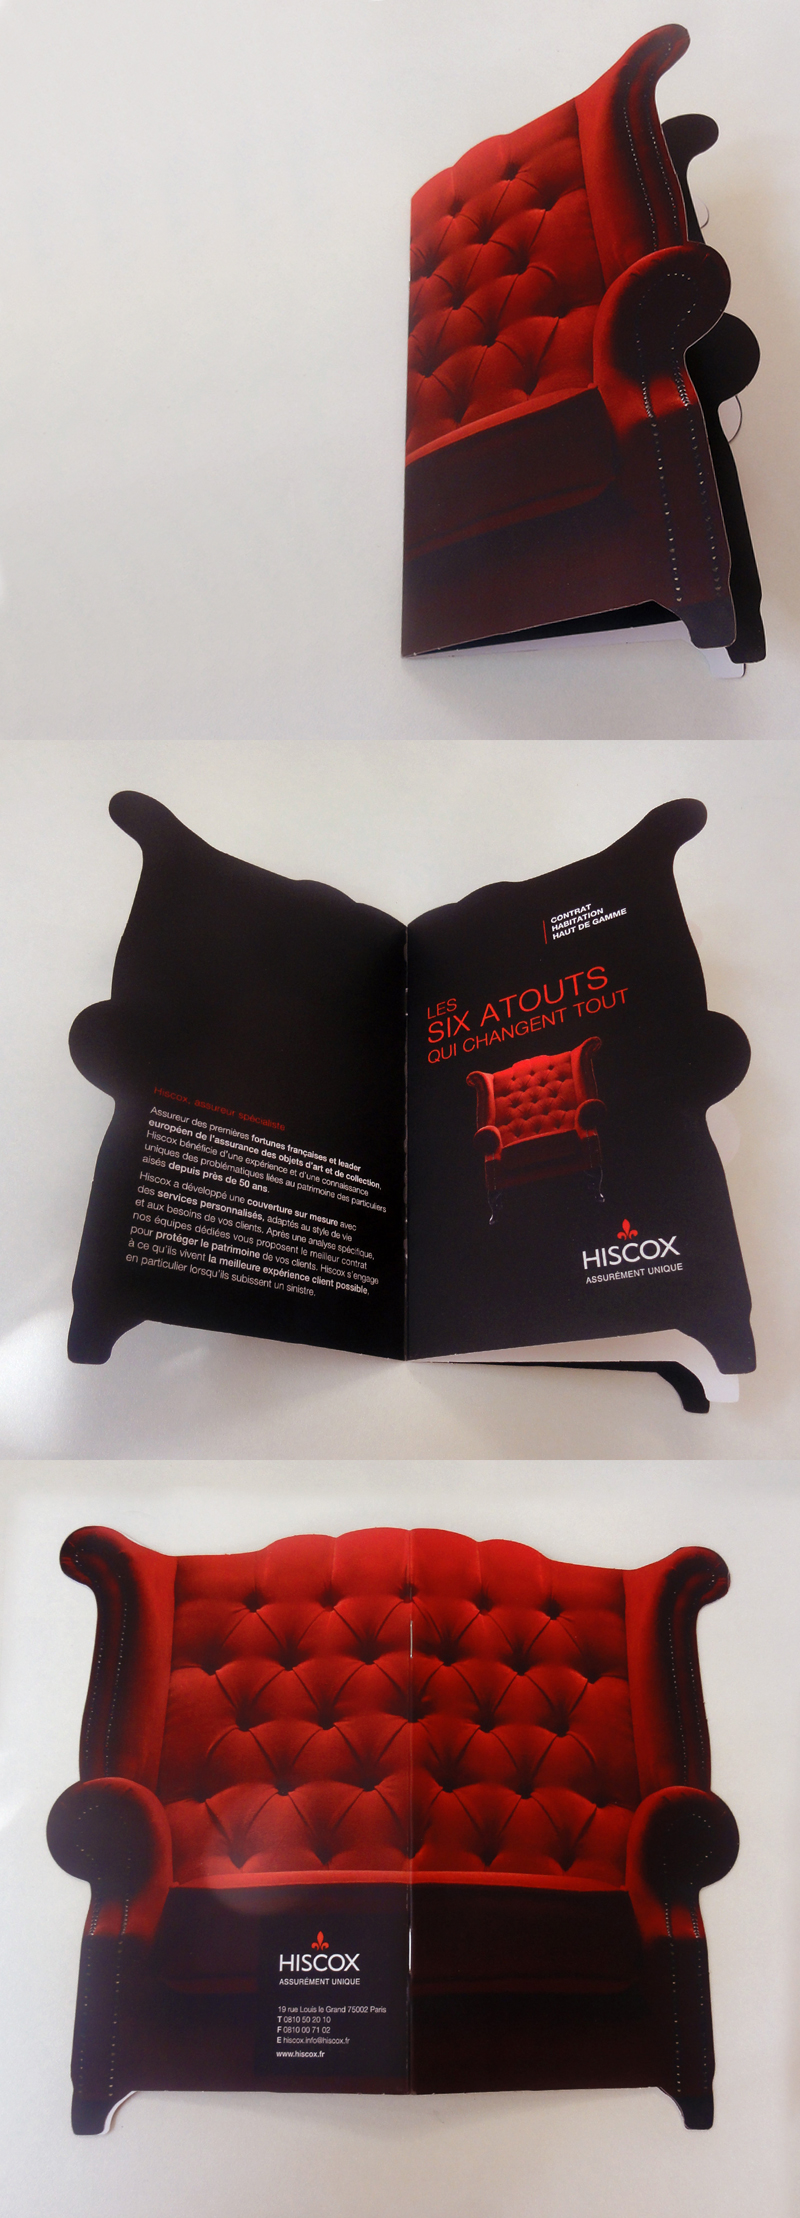 edition-hiscox-argu-cpx-complet